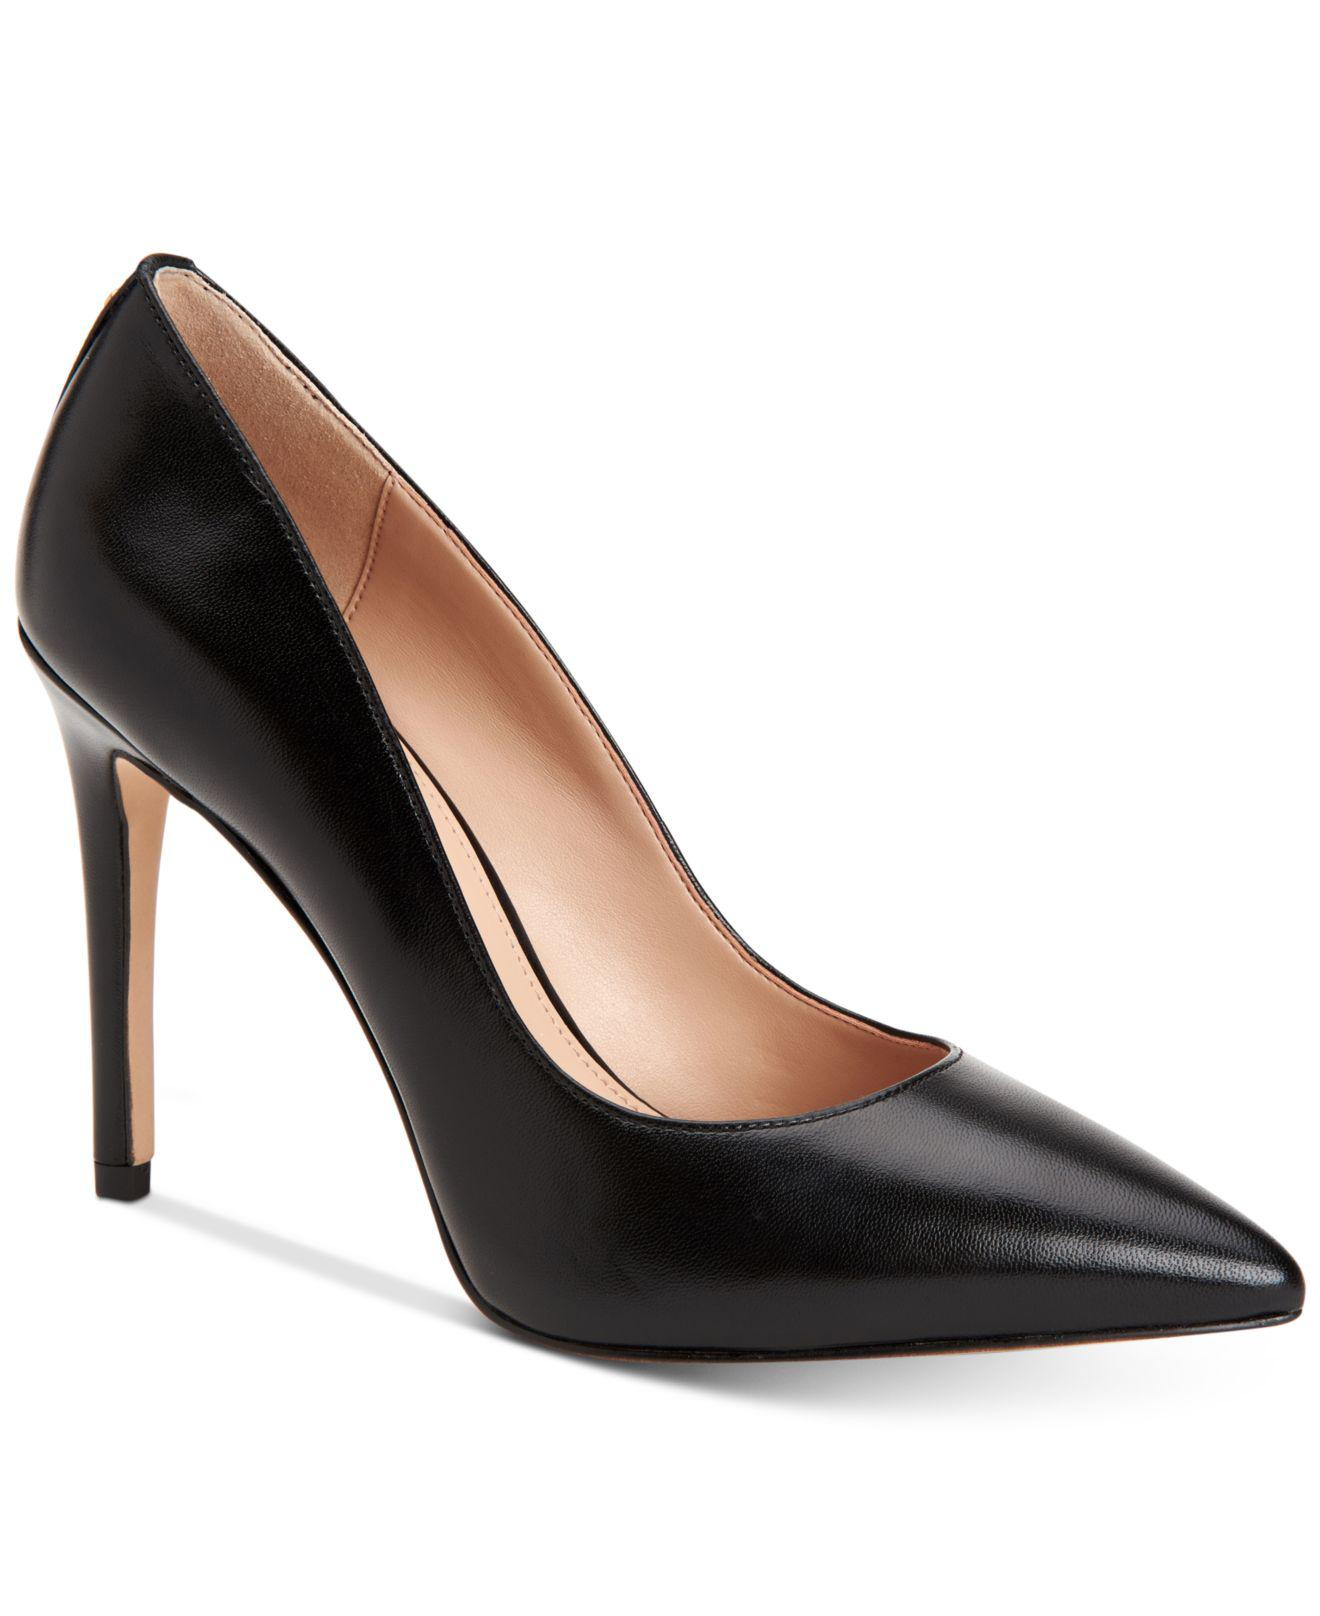 BCBGeneration Harleigh Chain Pointy Toe Pumps Women's Shoes vLQ8qO